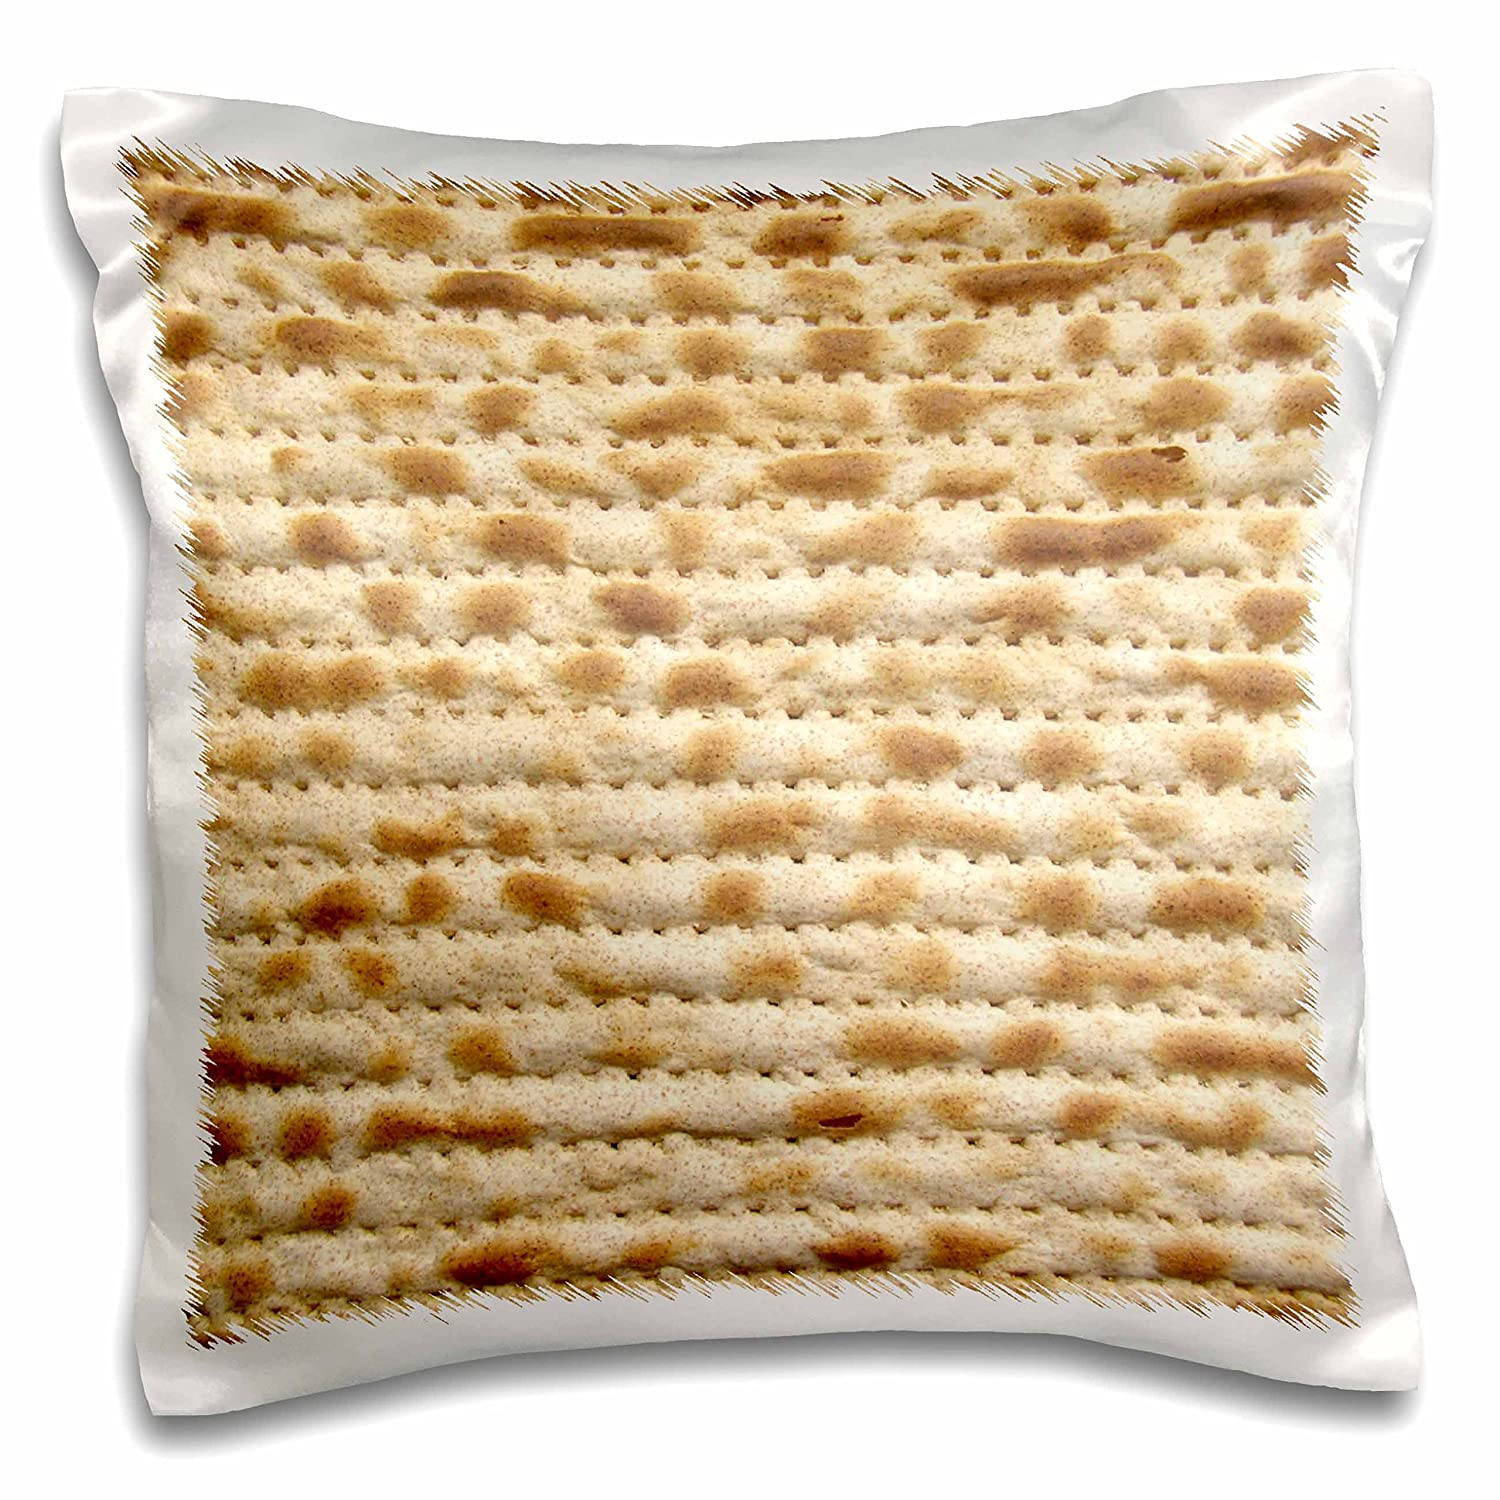 """3dRose Matzah Bread Texture Photo-for Passover Pesach-Funny Jewish Humor-Humorous Matzo Judaism Food-Pillow Case, 16 by 16"""" (pc_112943_1)"""